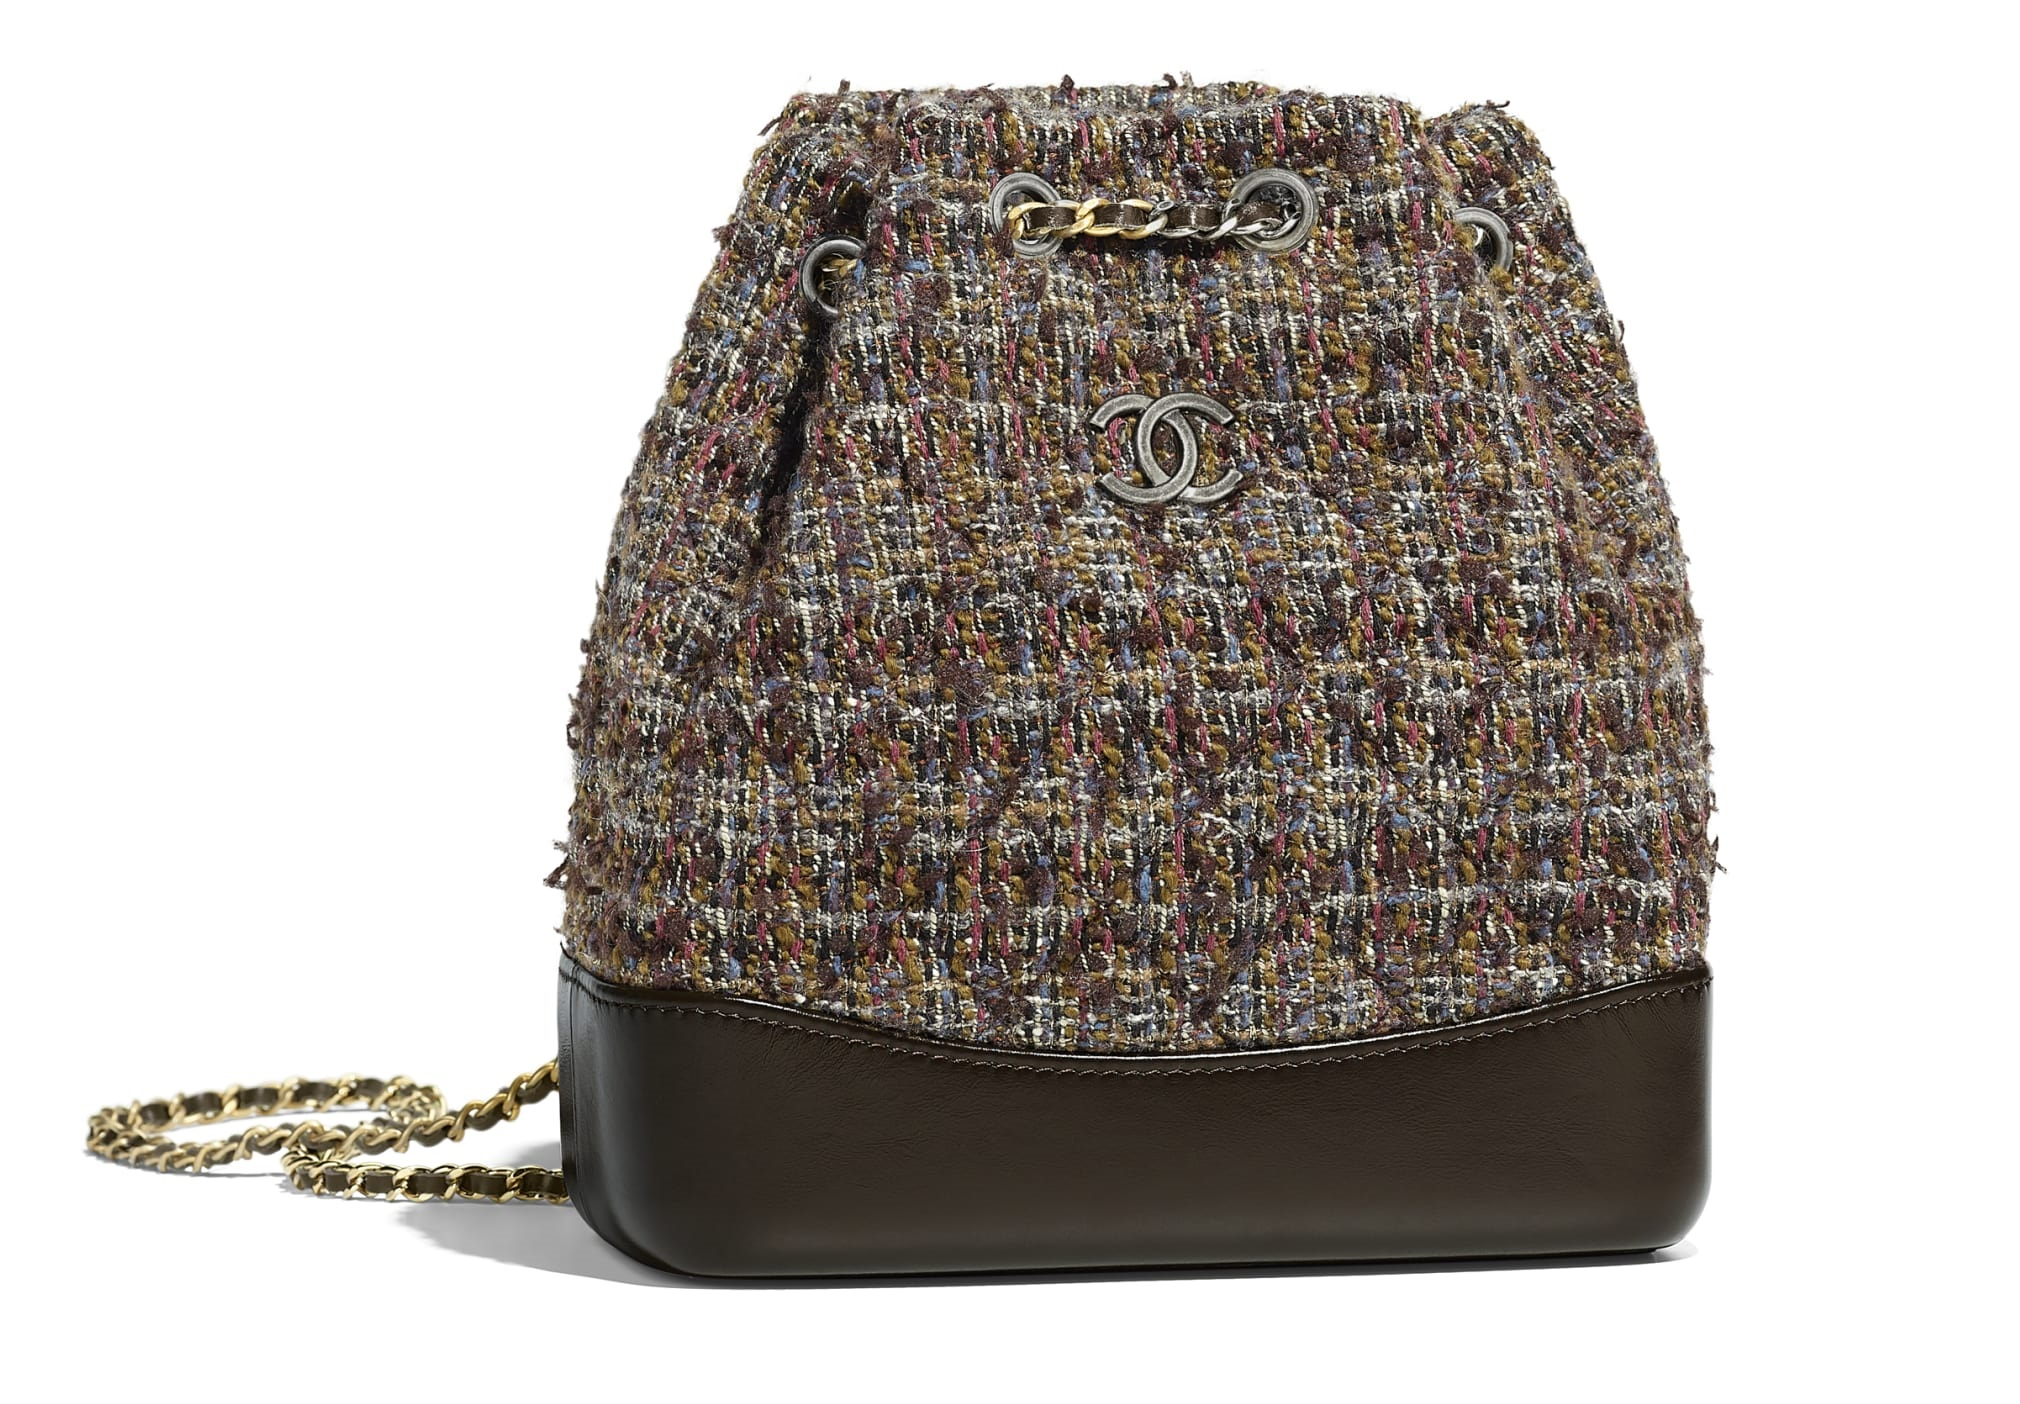 Borsa a secchiello Chanel in tweed autunno inverno 2018 2019